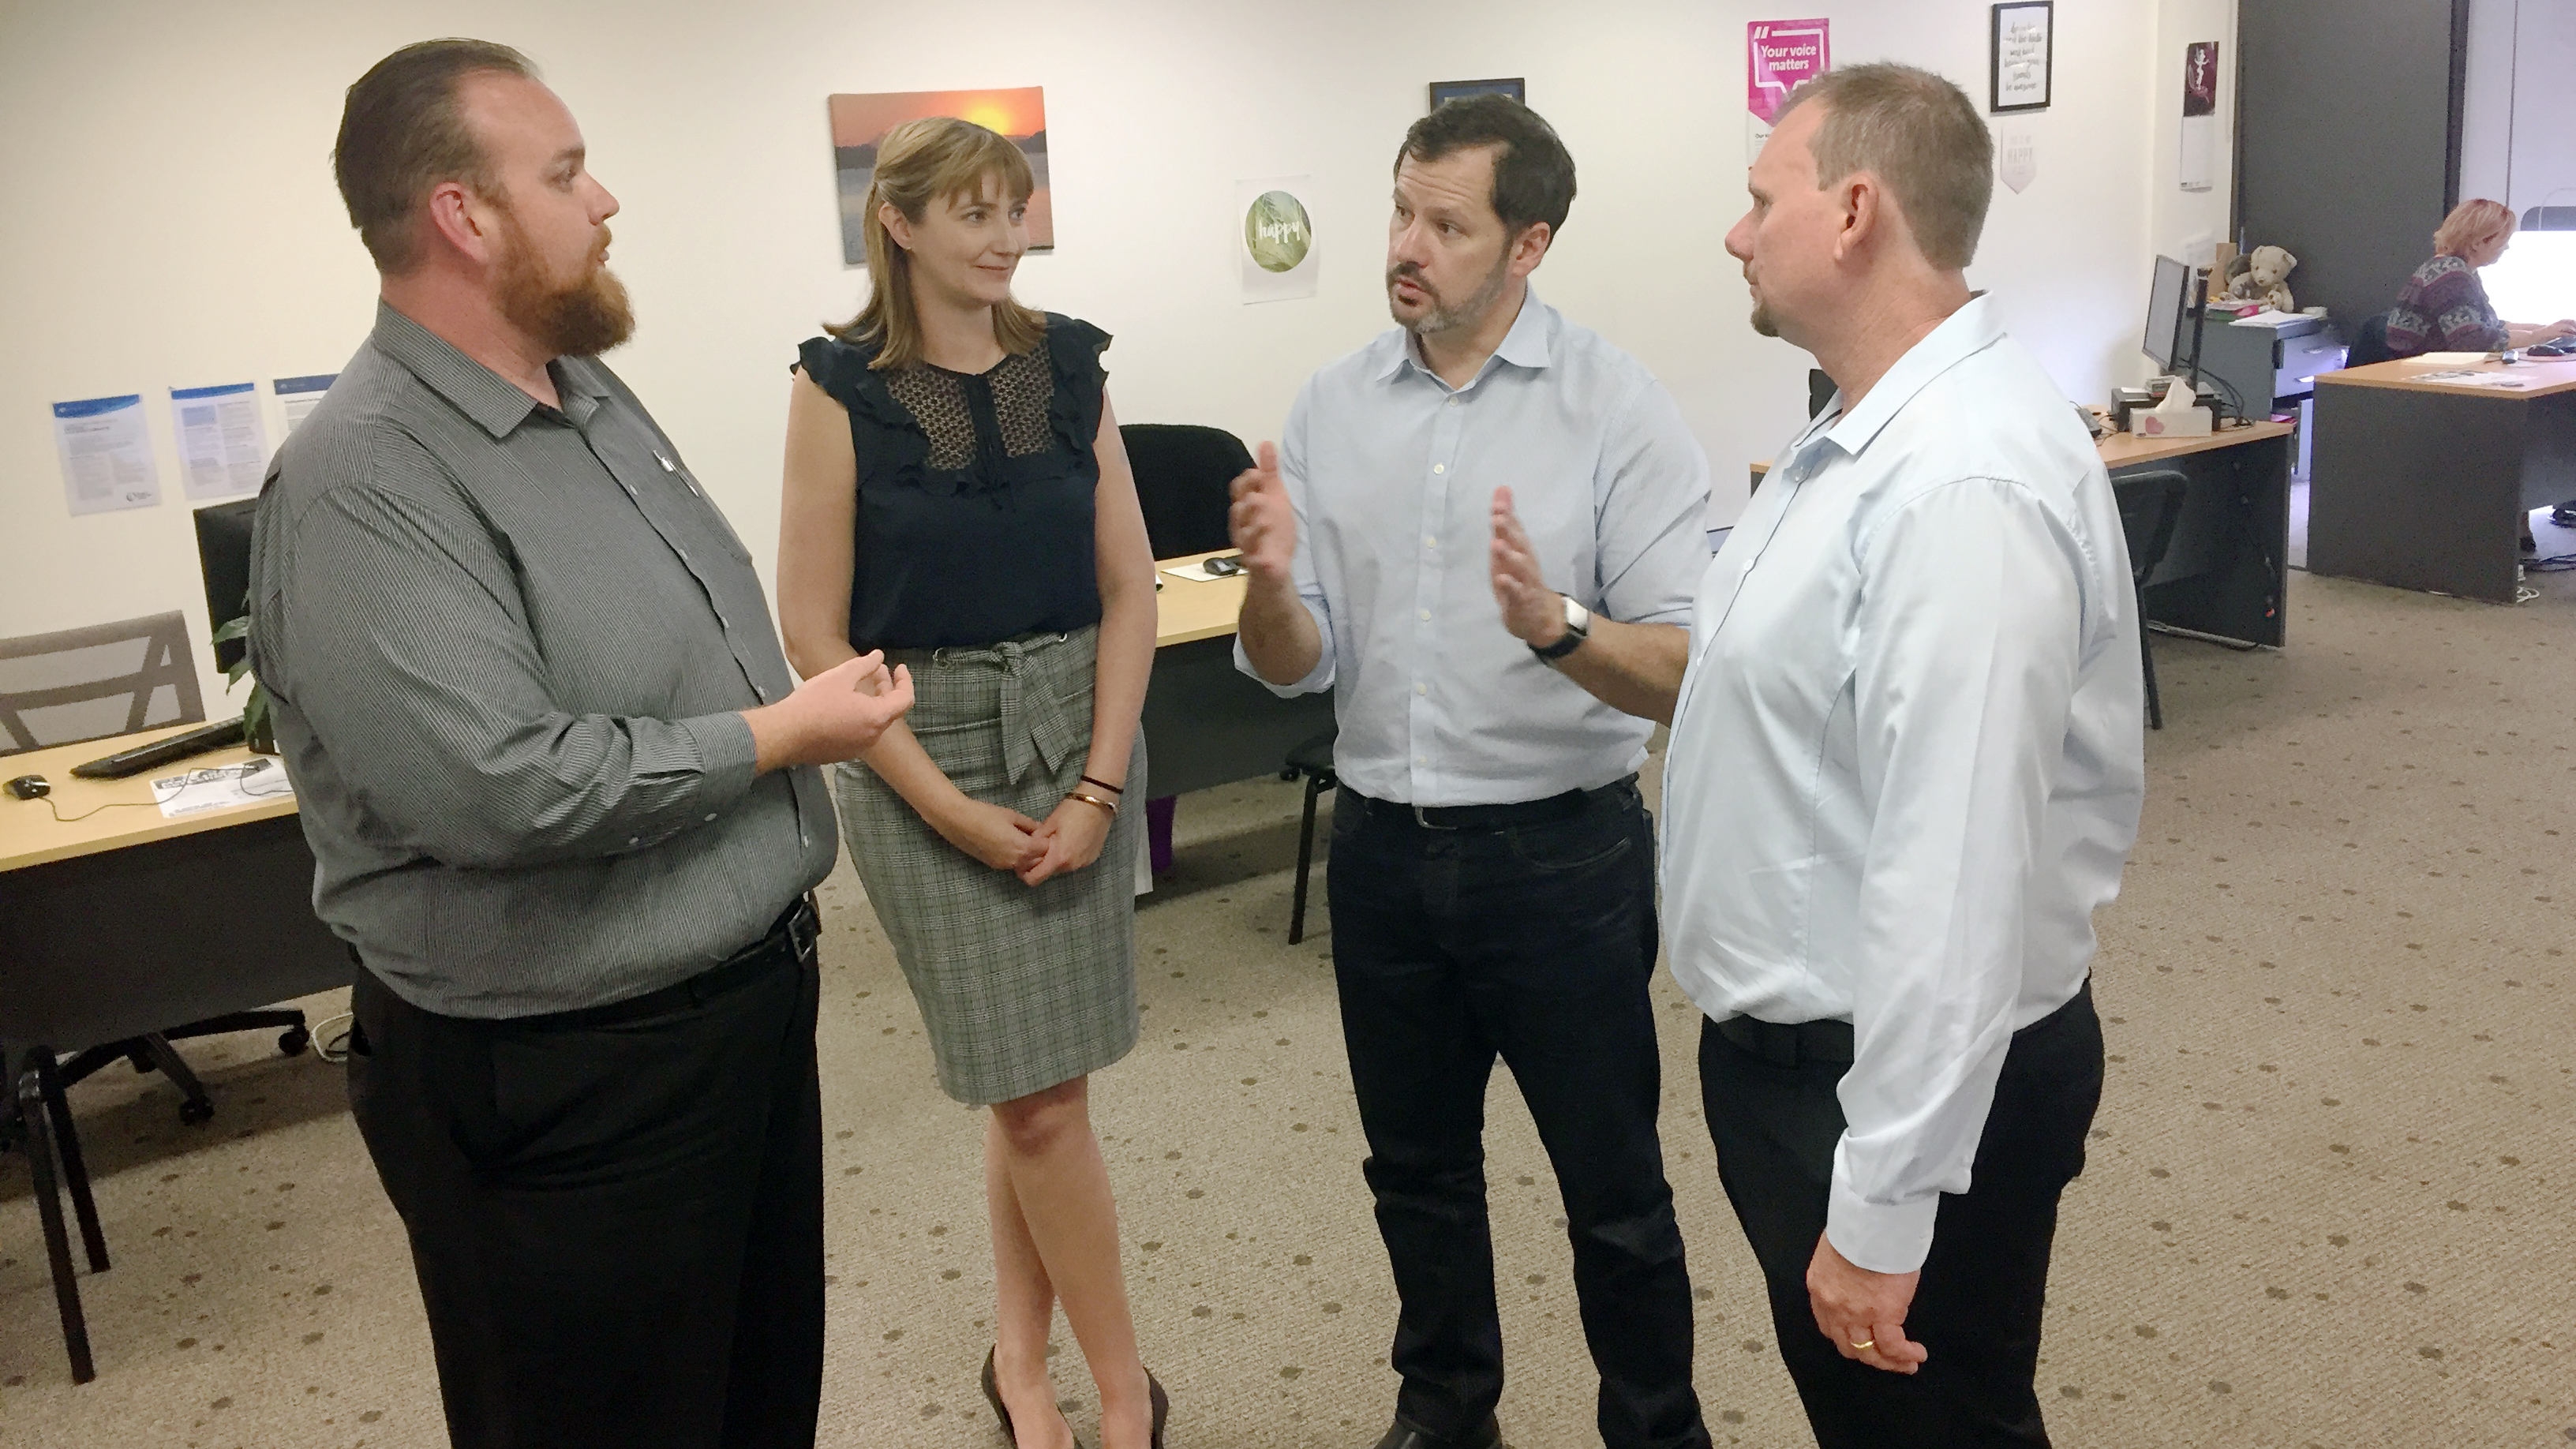 Michael Stevens and Zoey Hunt from APM, Ed Husic Opposition Minister, Russell Robertson – who is running for federal parliament in Capricornia.